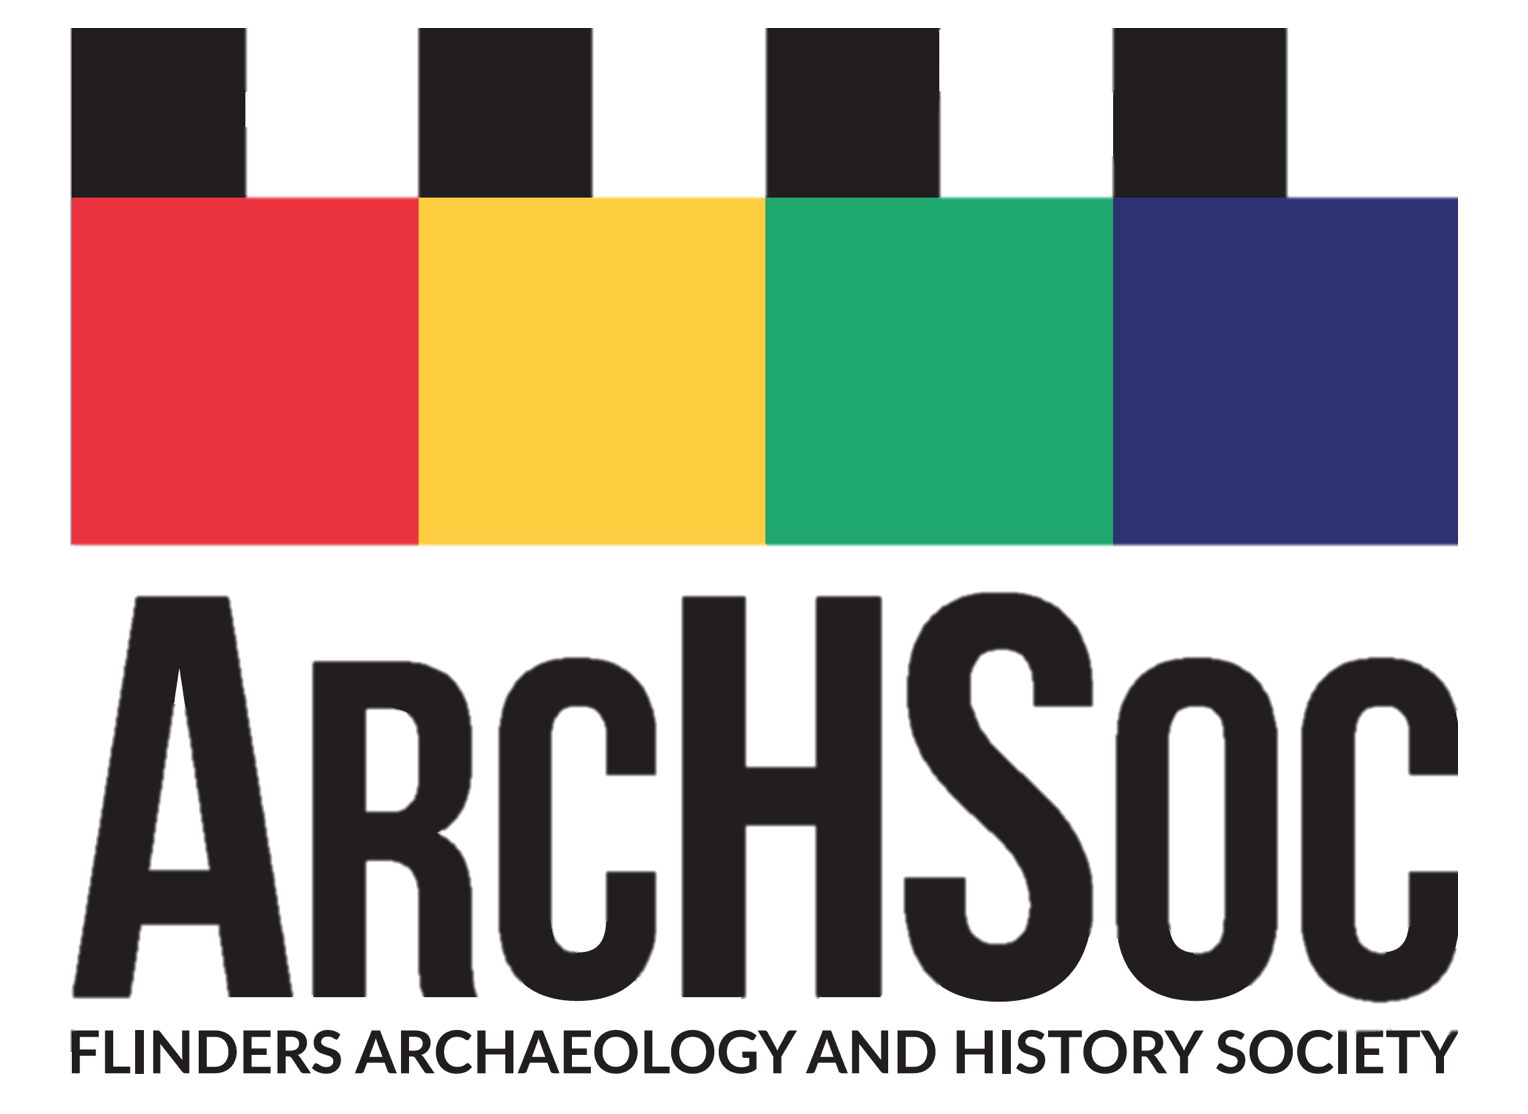 Flinders Archaeology and History Society